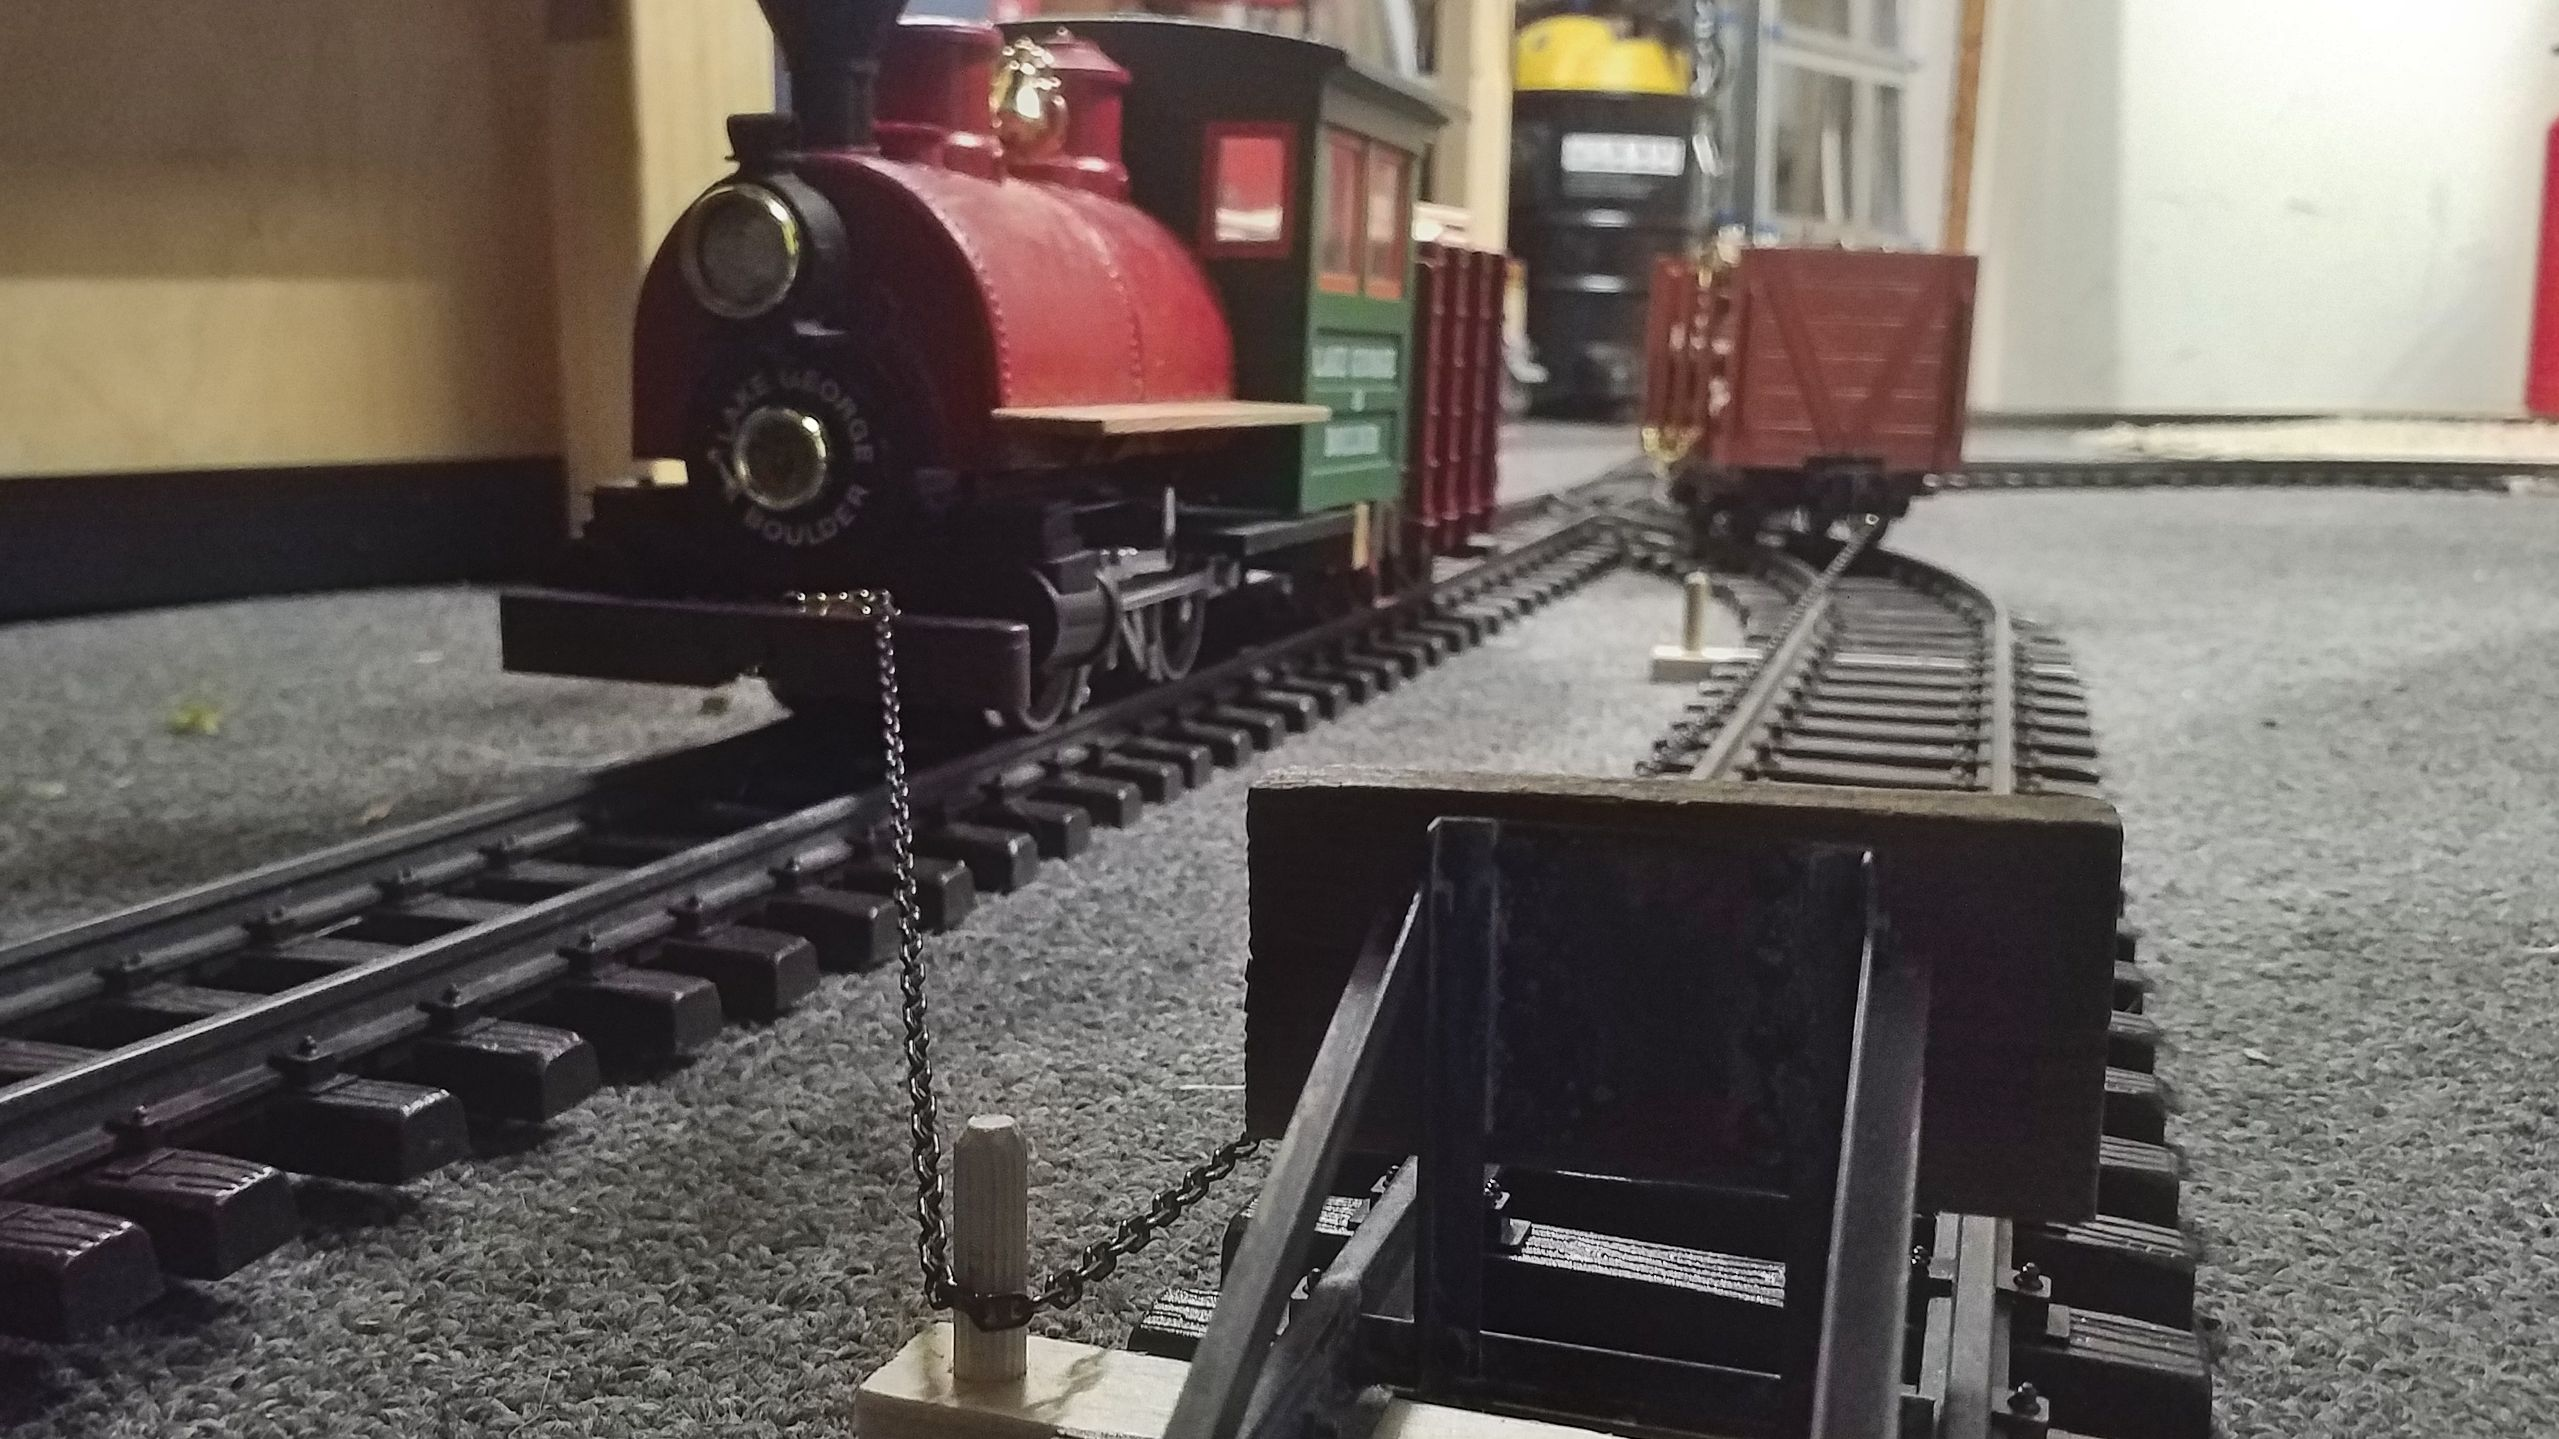 The second bollard allows the loco to reverse.